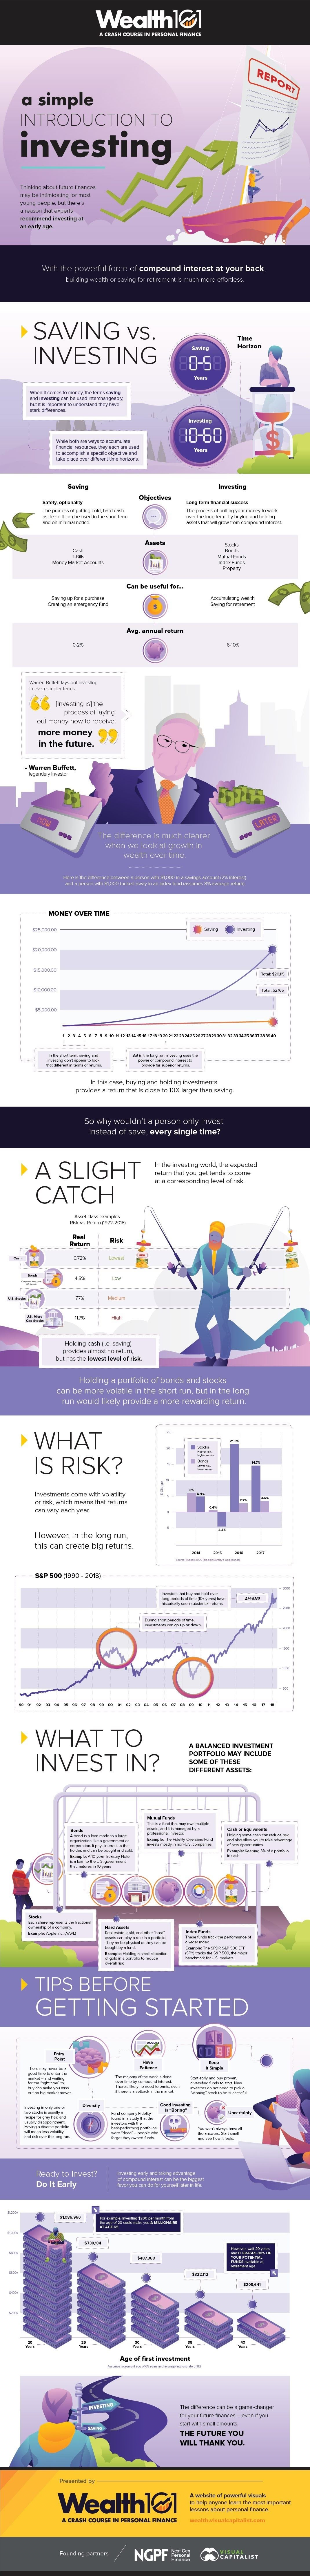 A Simple Introduction to Investing #infographic